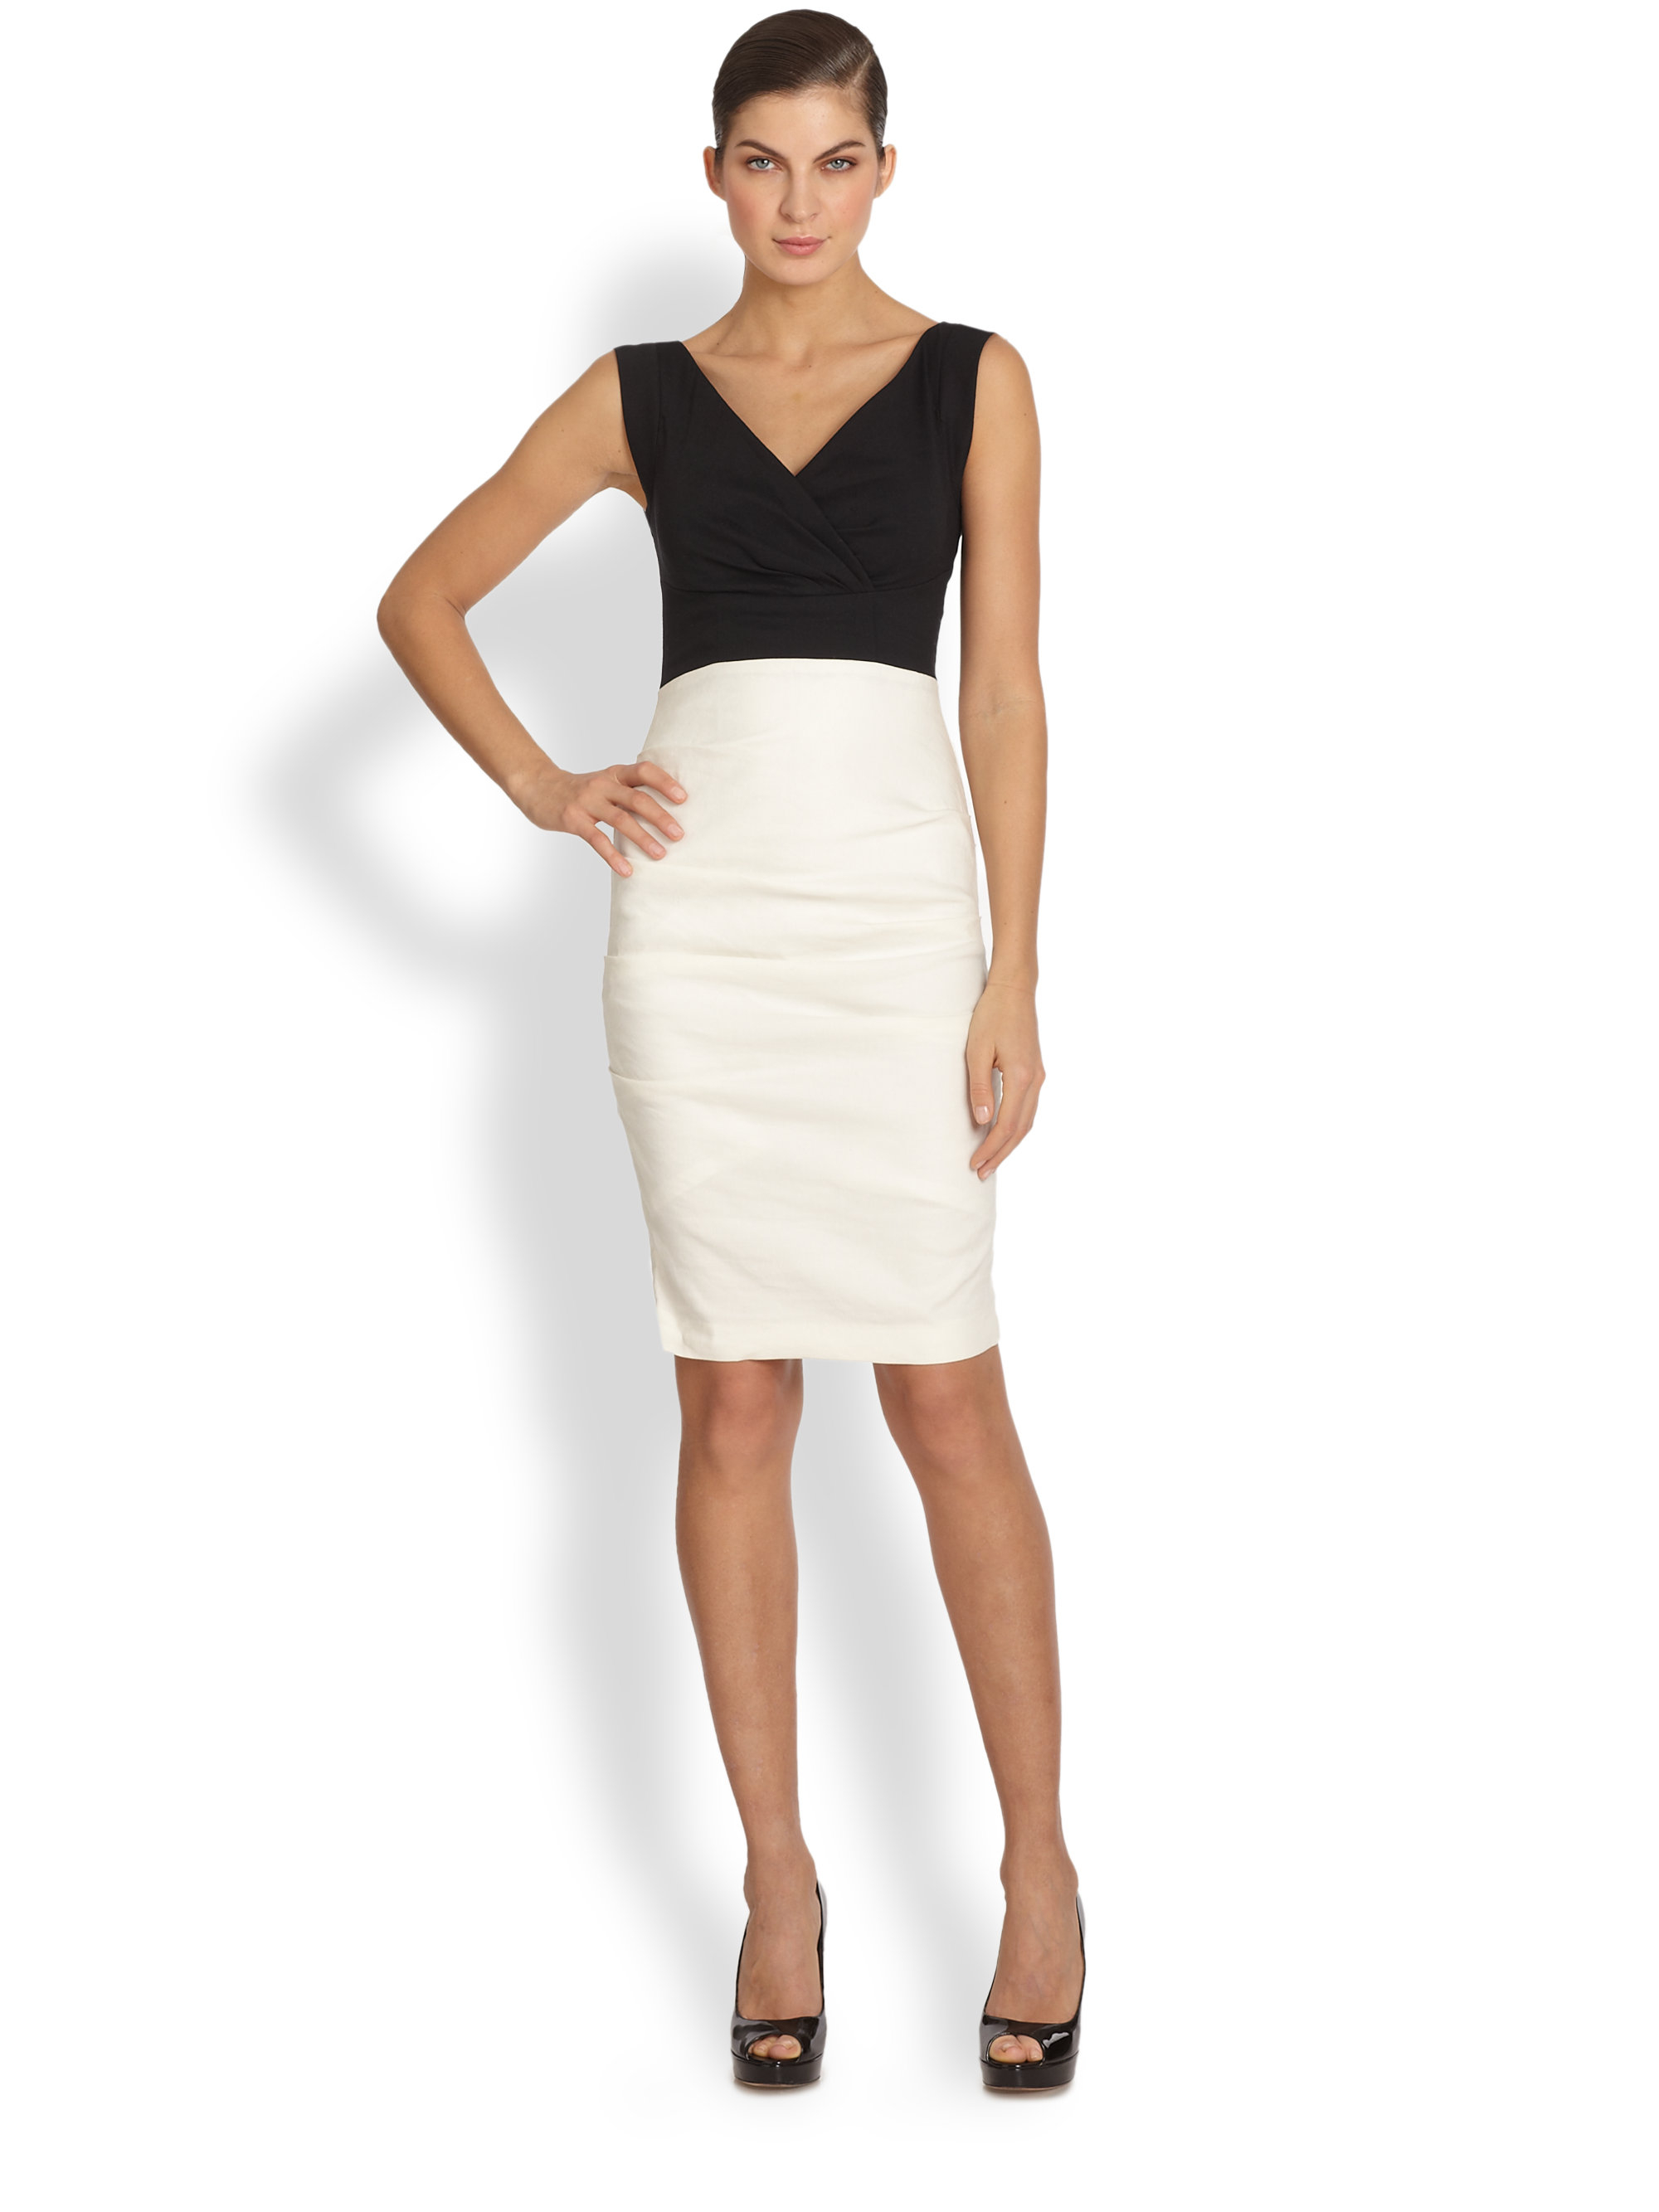 Lyst Nicole Miller Andrea Two Tone Cocktail Dress In Black